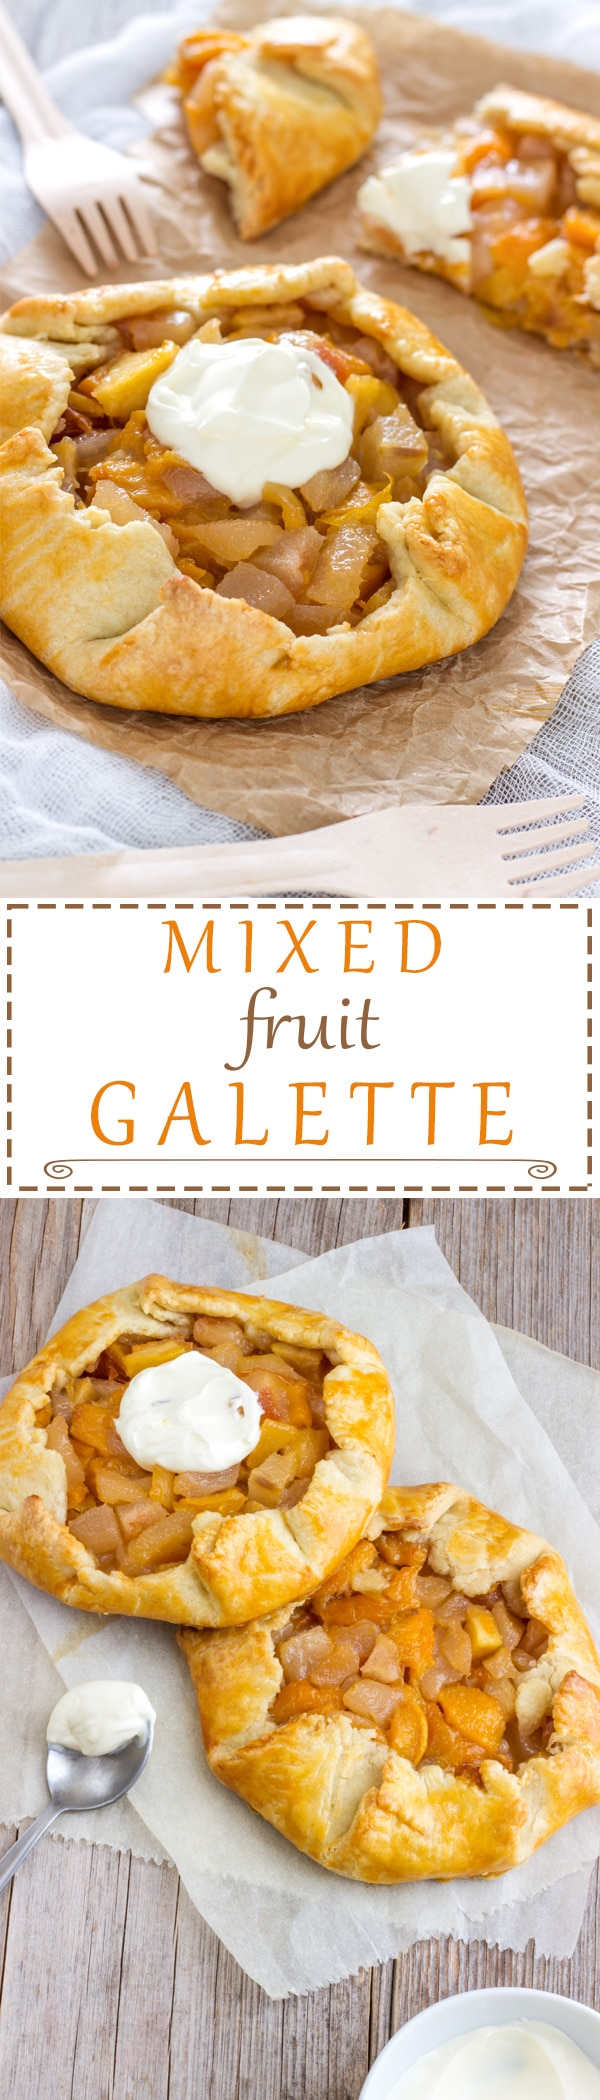 to bake! What is great about galette is that you can use any fruit ...